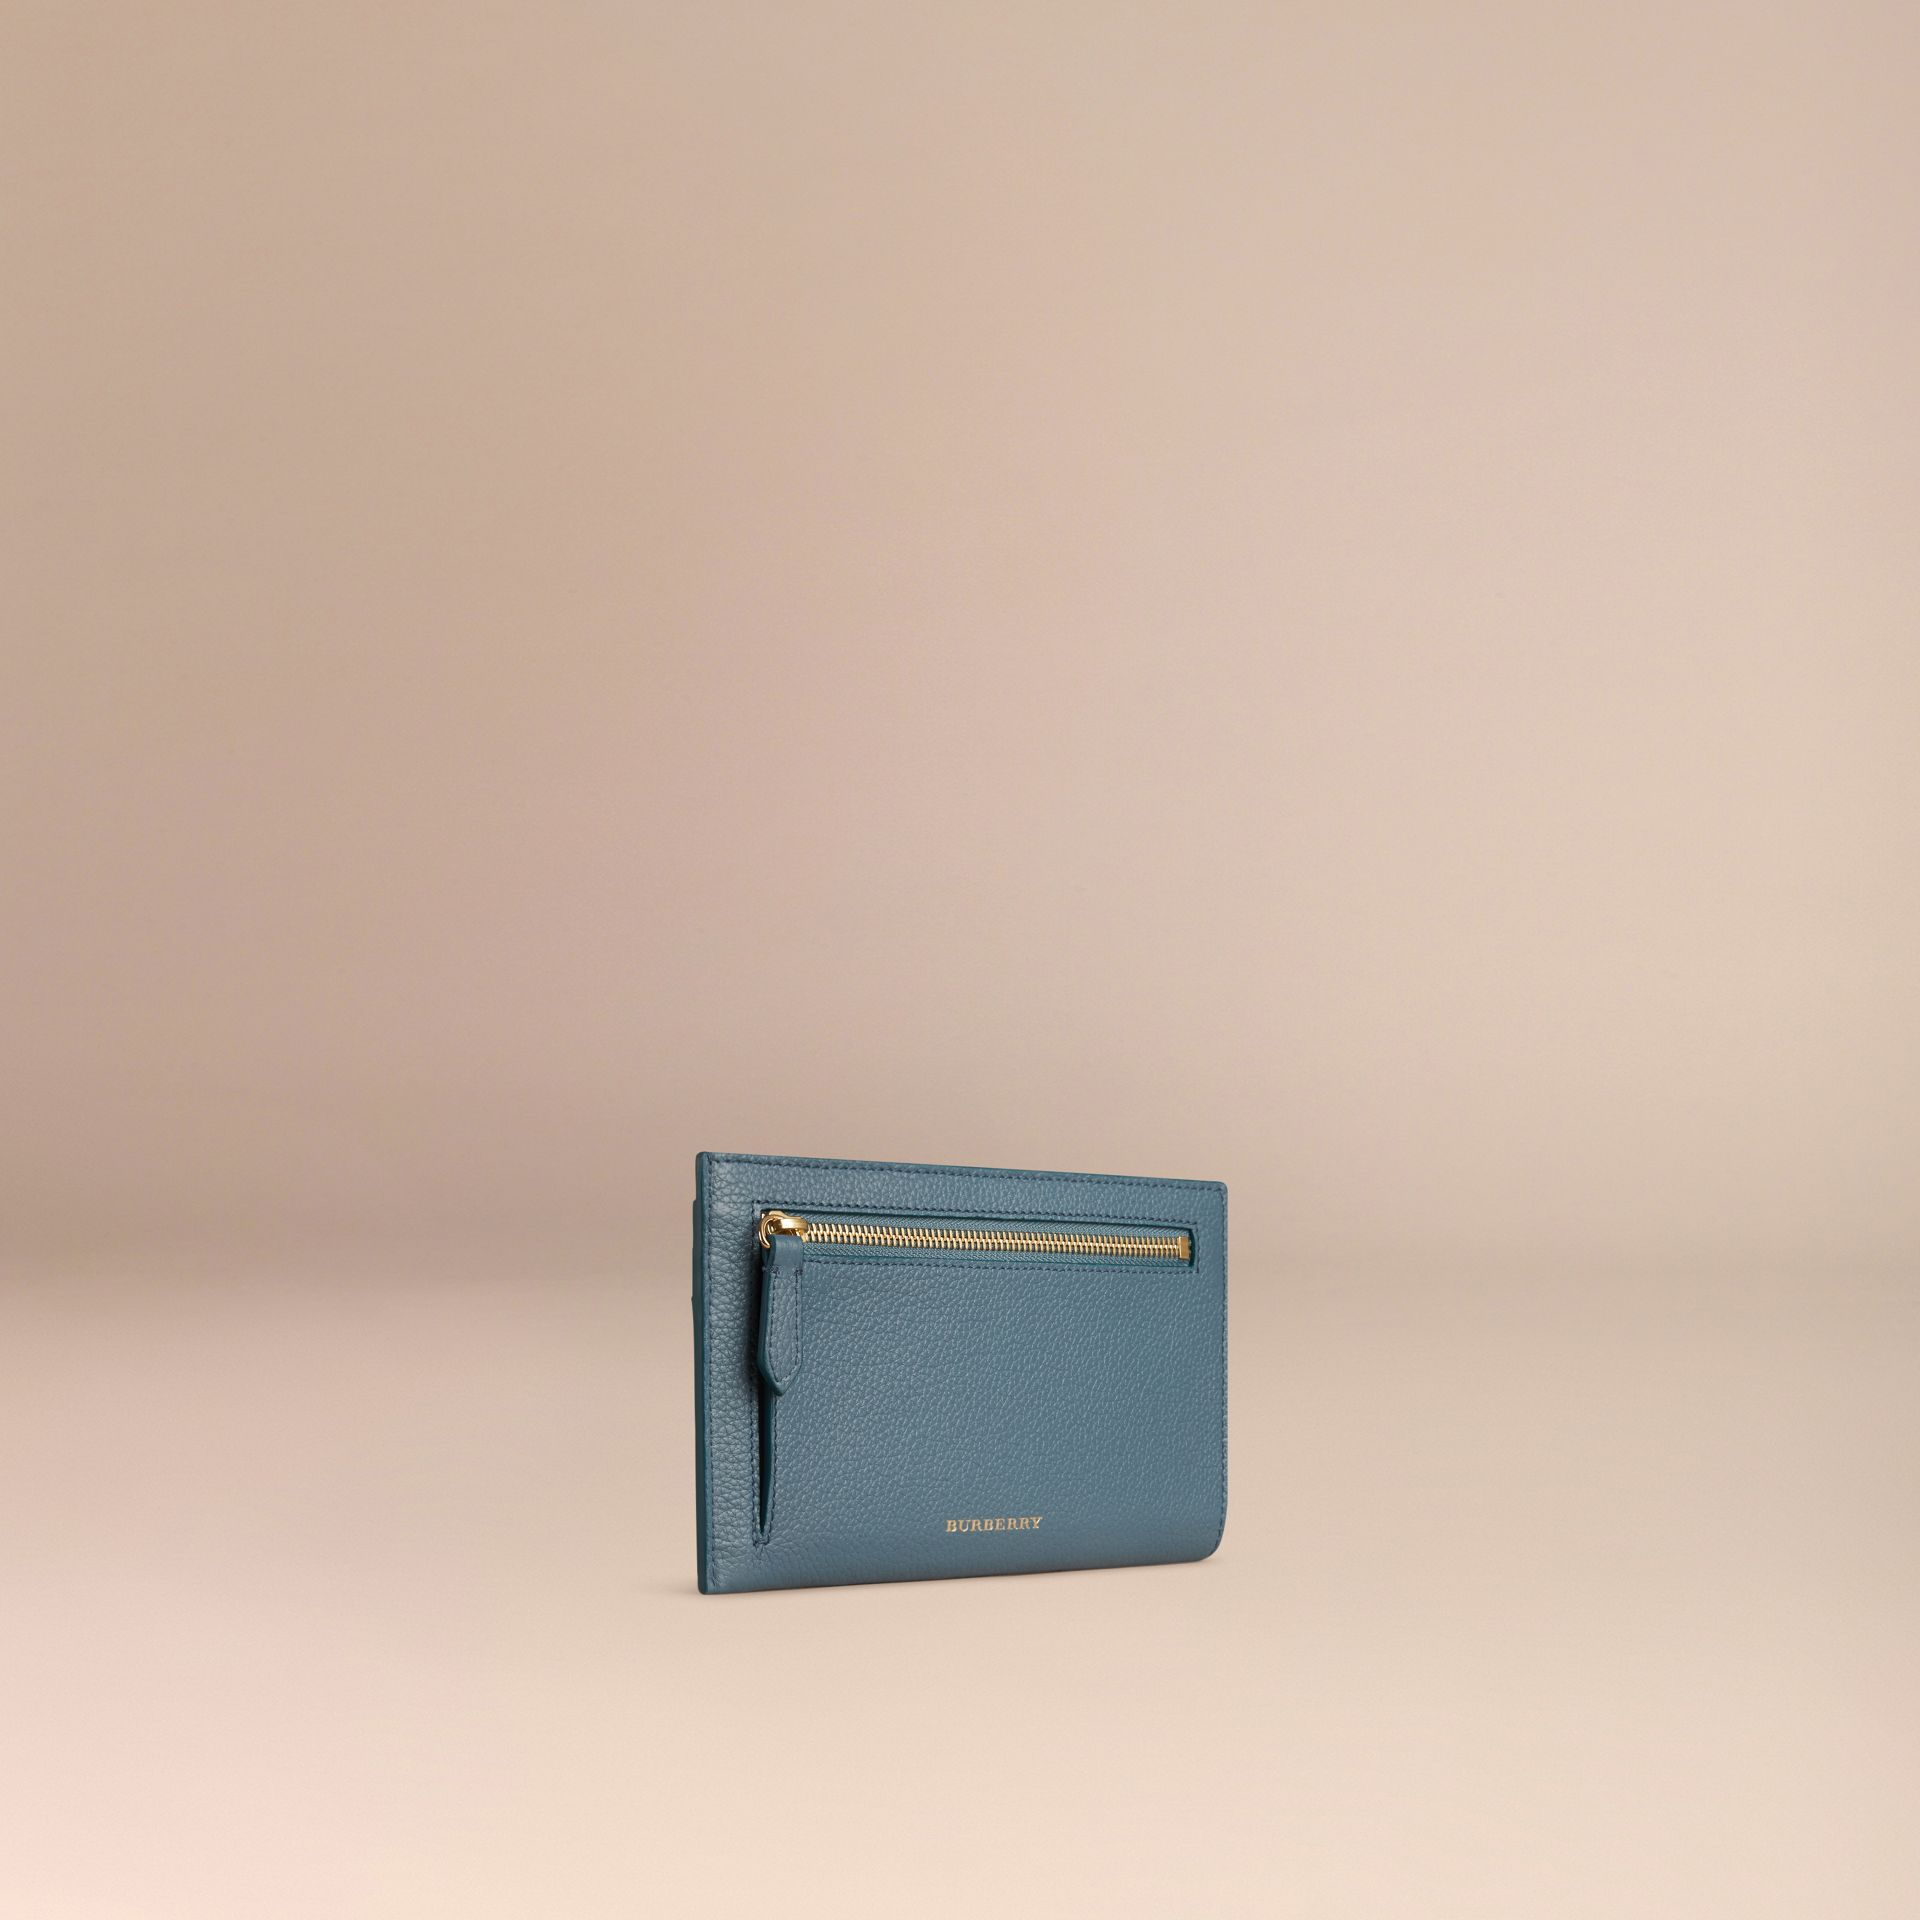 Grainy Leather Travel Case in Dusty Teal | Burberry - gallery image 3